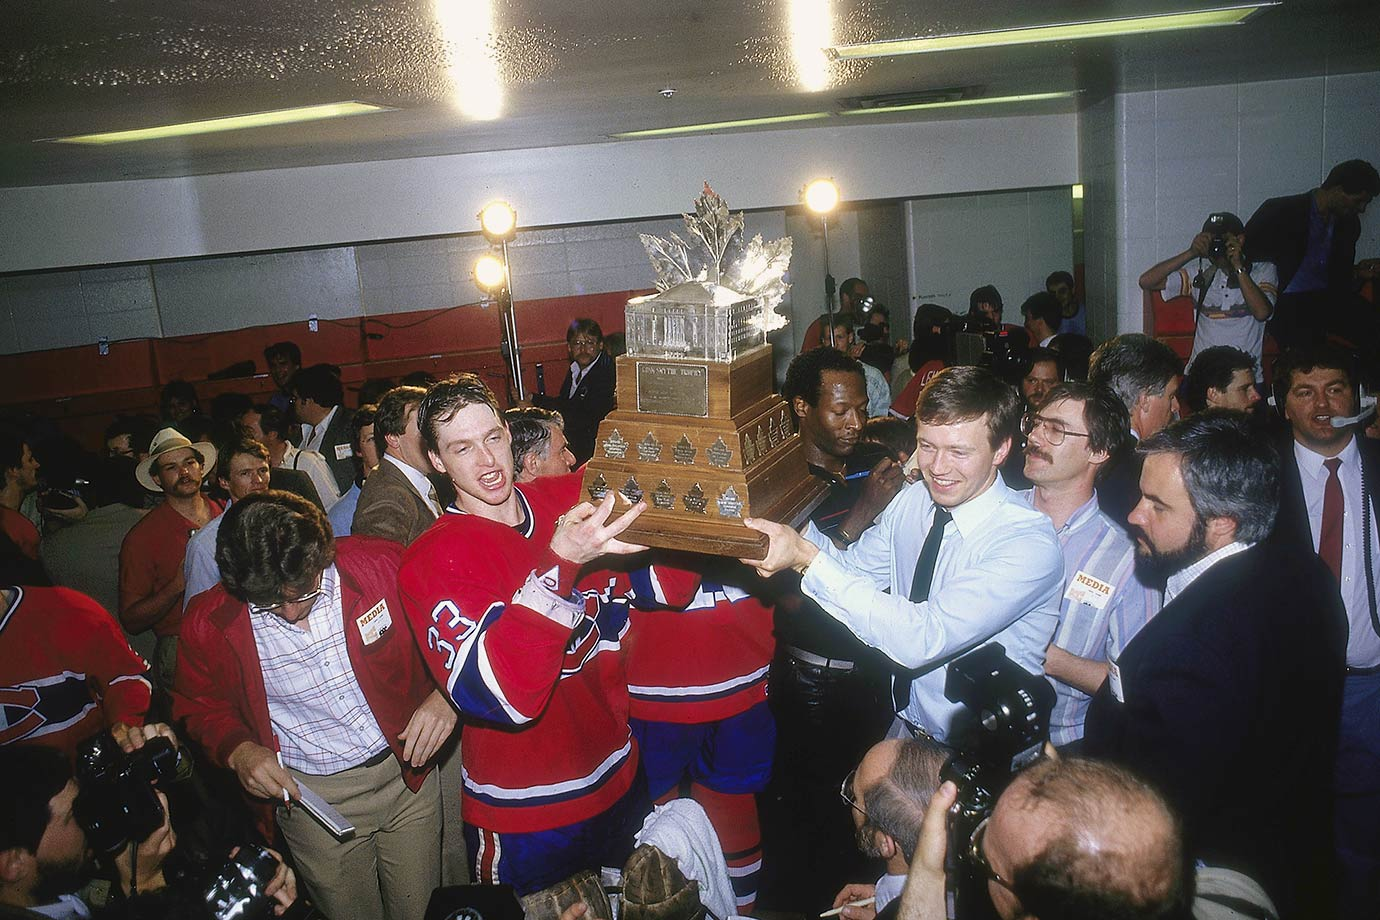 May 24, 1986 — Stanley Cup Final, Game 5 (Canadiens vs. Flames)